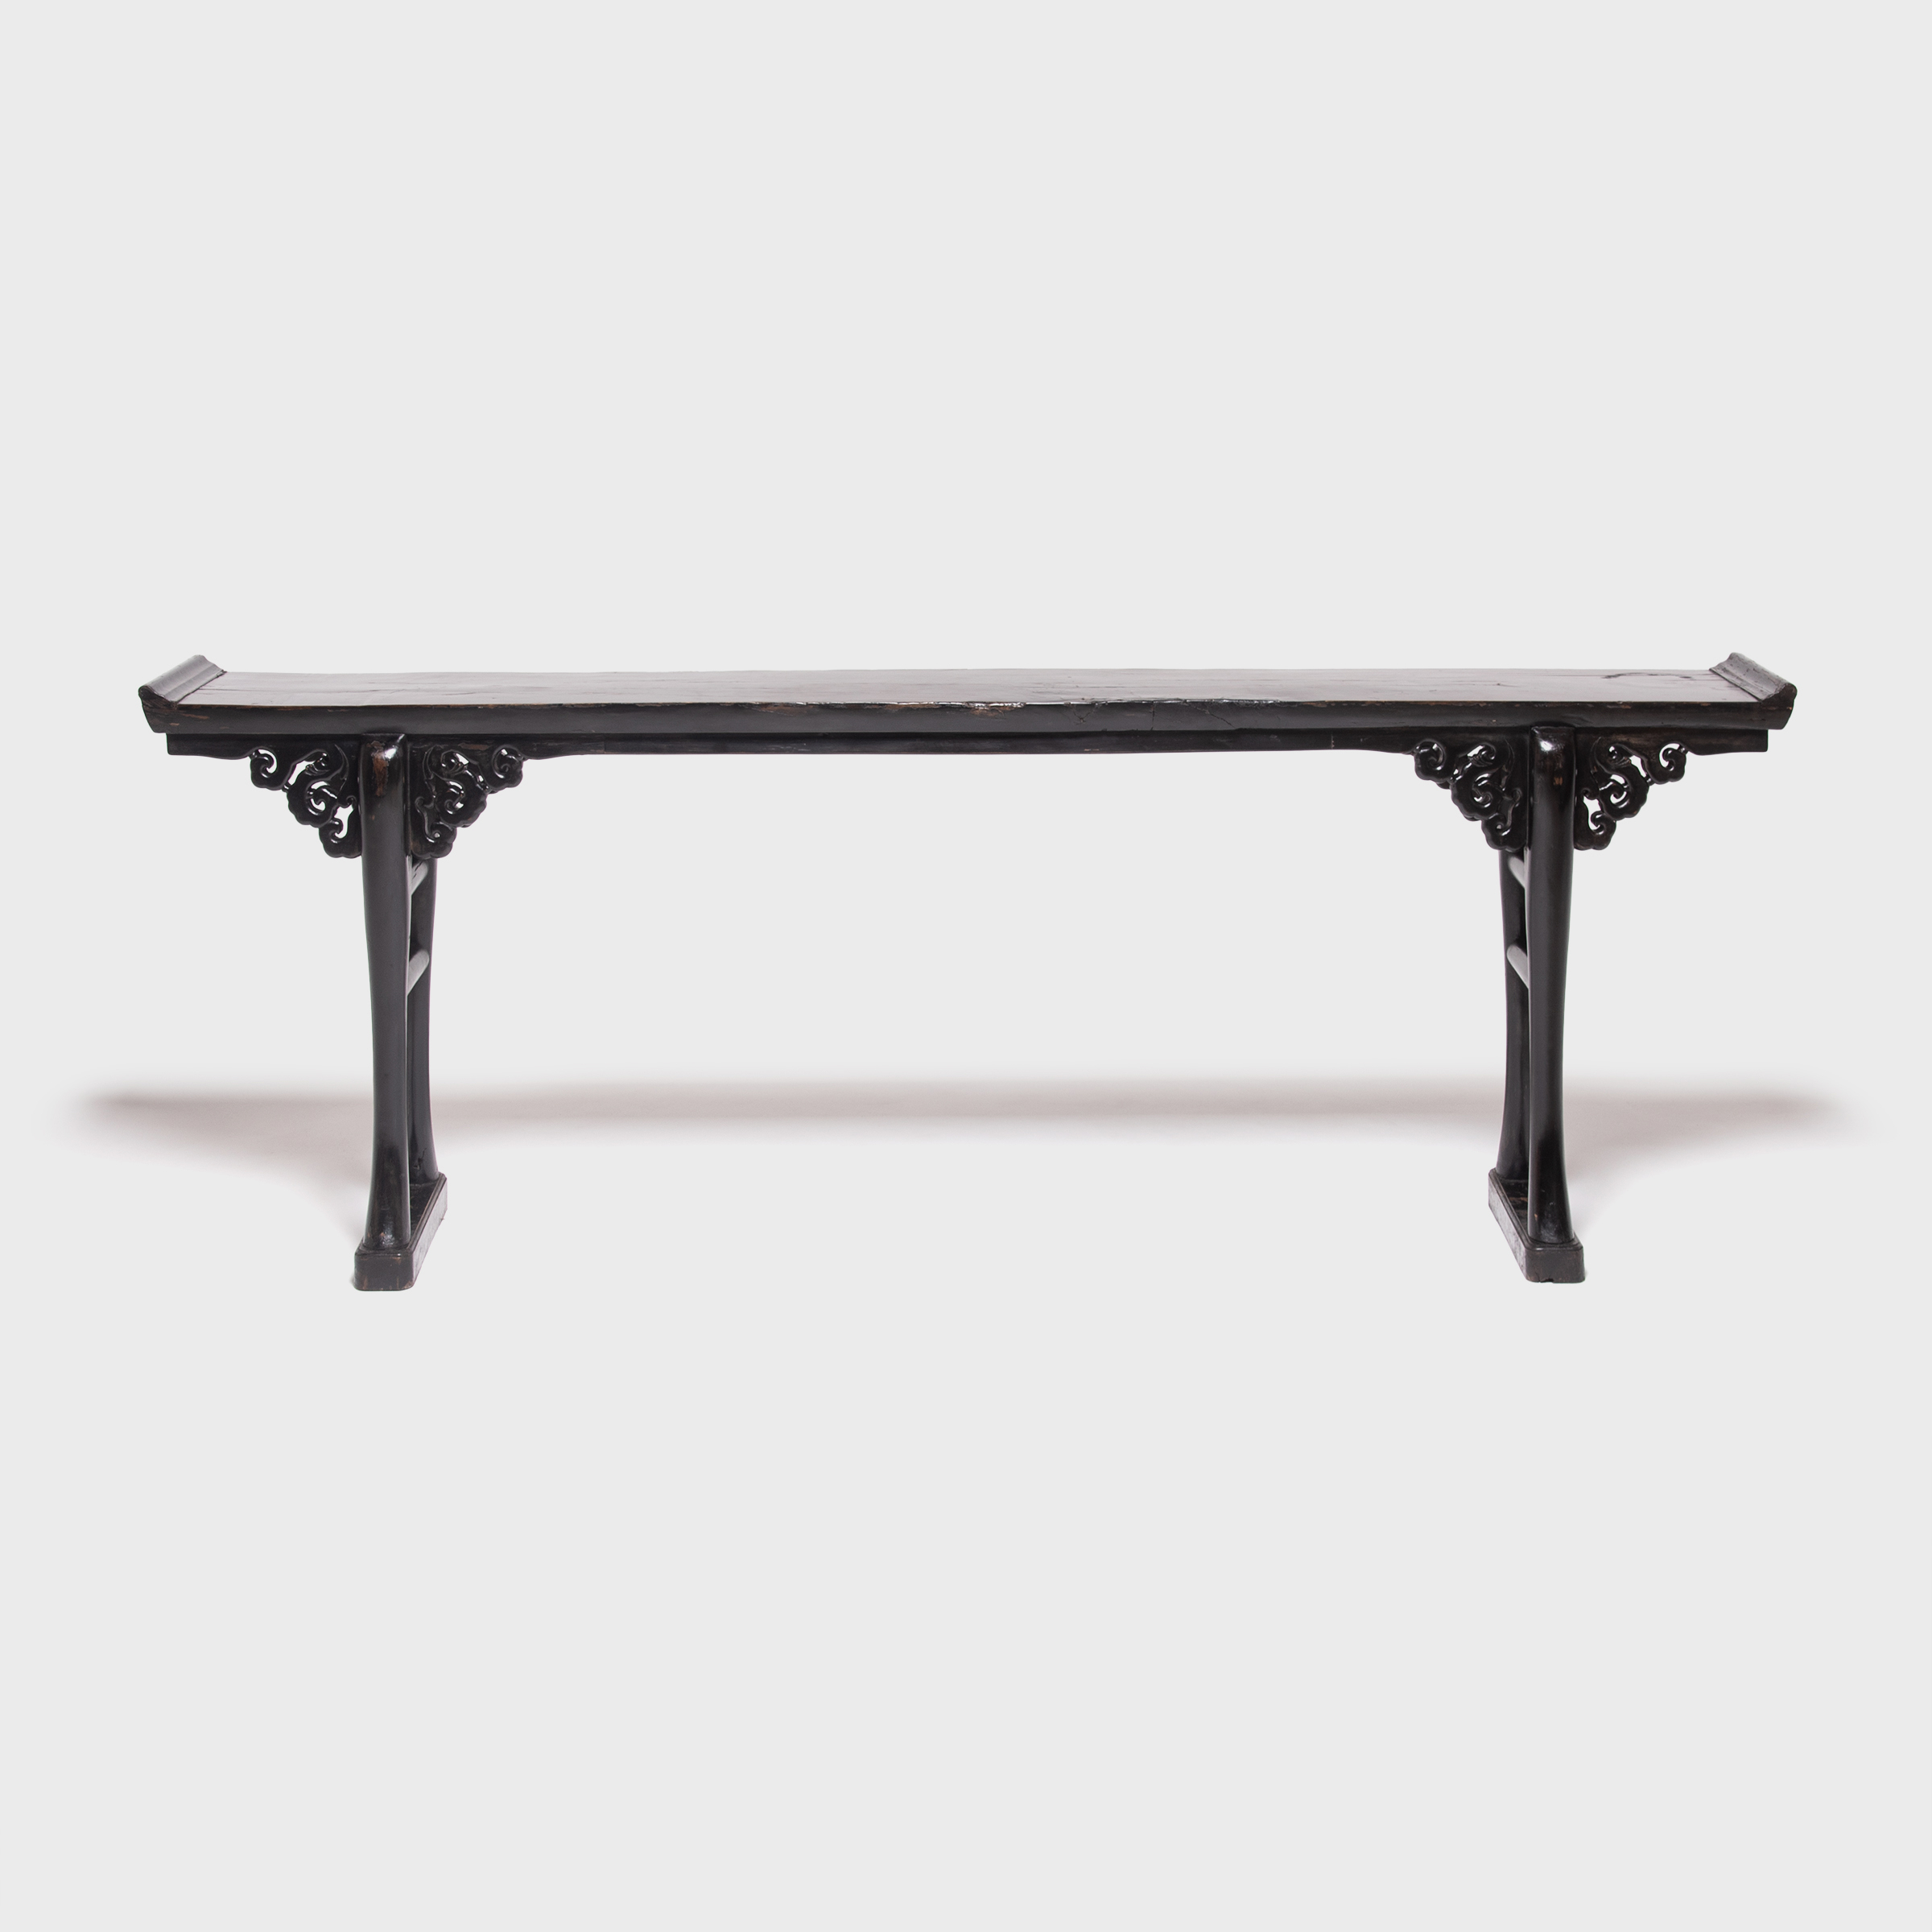 Chinese Tables And Antique Chinese Tables | Pagoda Red With Era Limestone Console Tables (View 10 of 30)